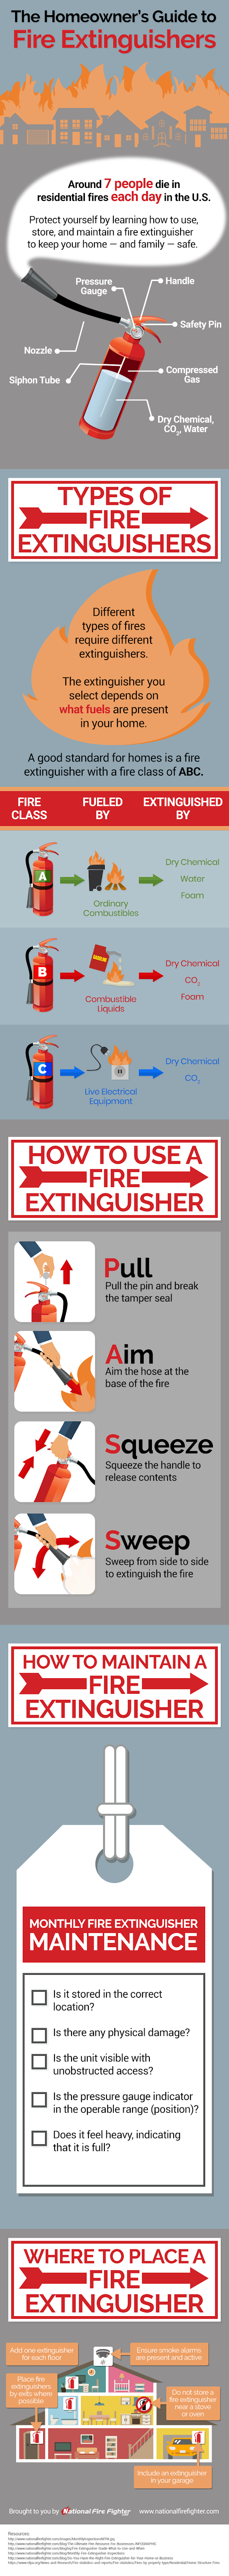 The Homeowner's Guide to Fire Extinguishers #infographic